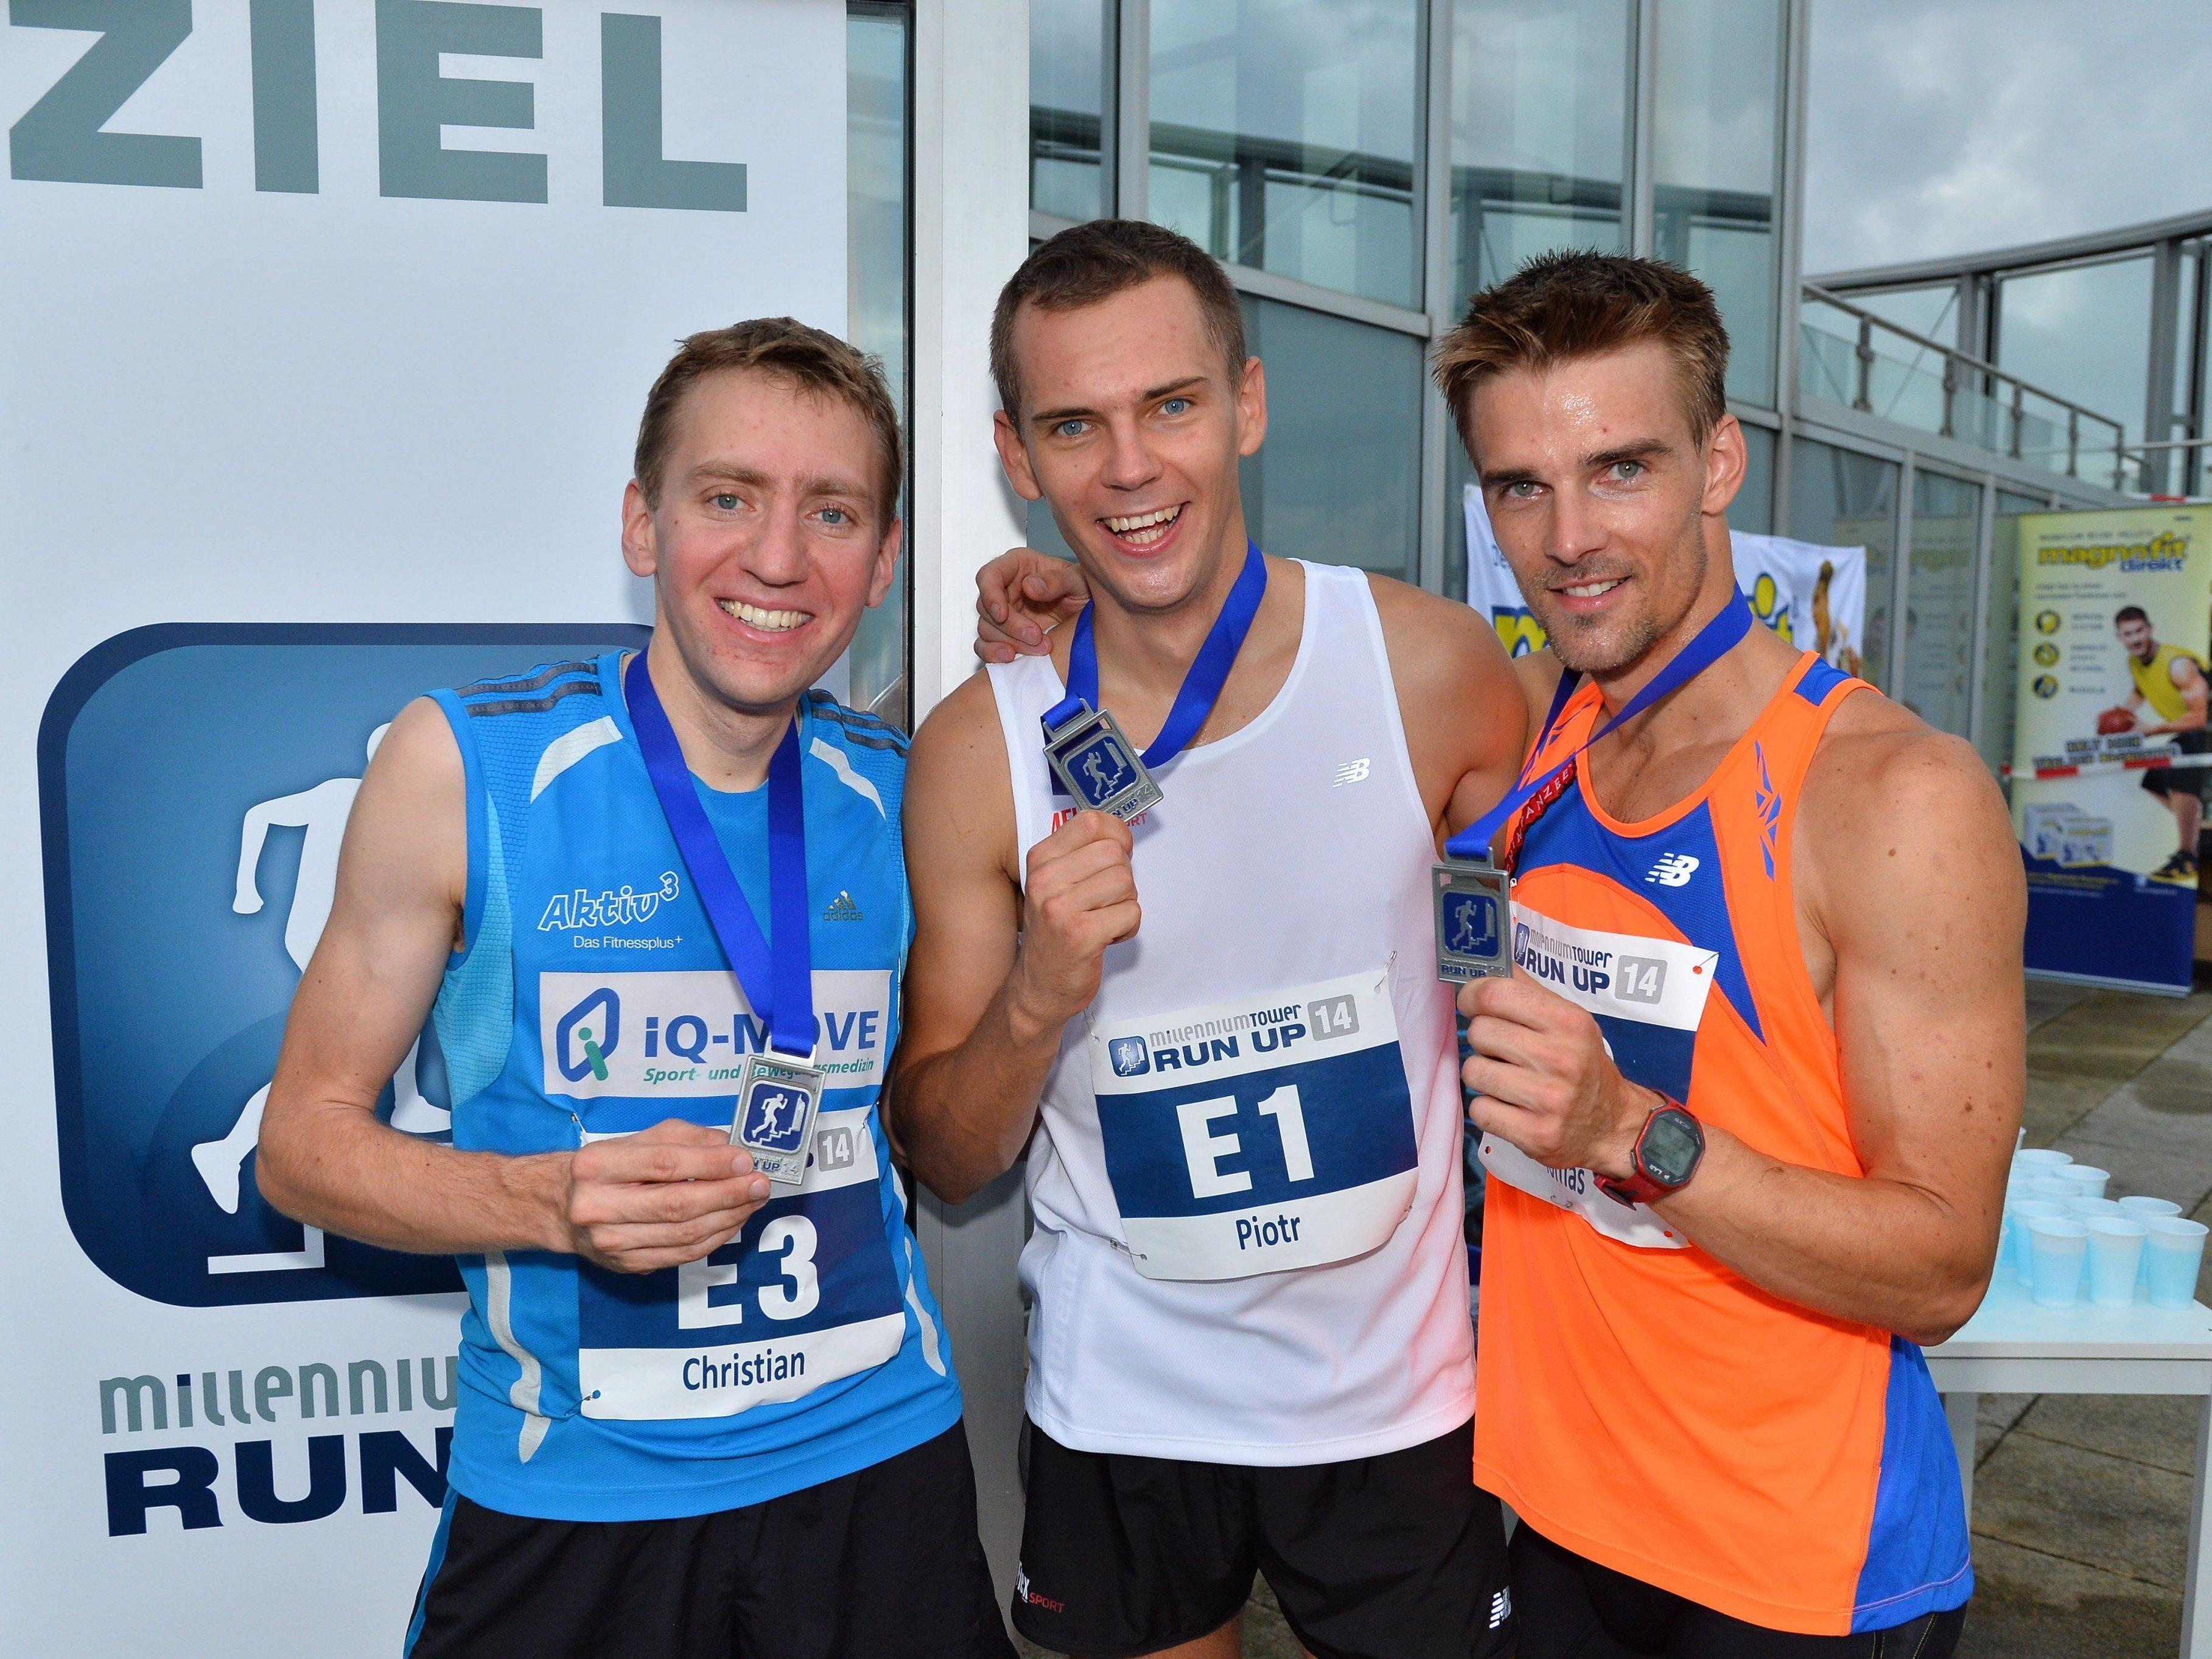 Riedl, Lobodzisnksi und Celko nach dem Millennium Tower Run Up in Wien.